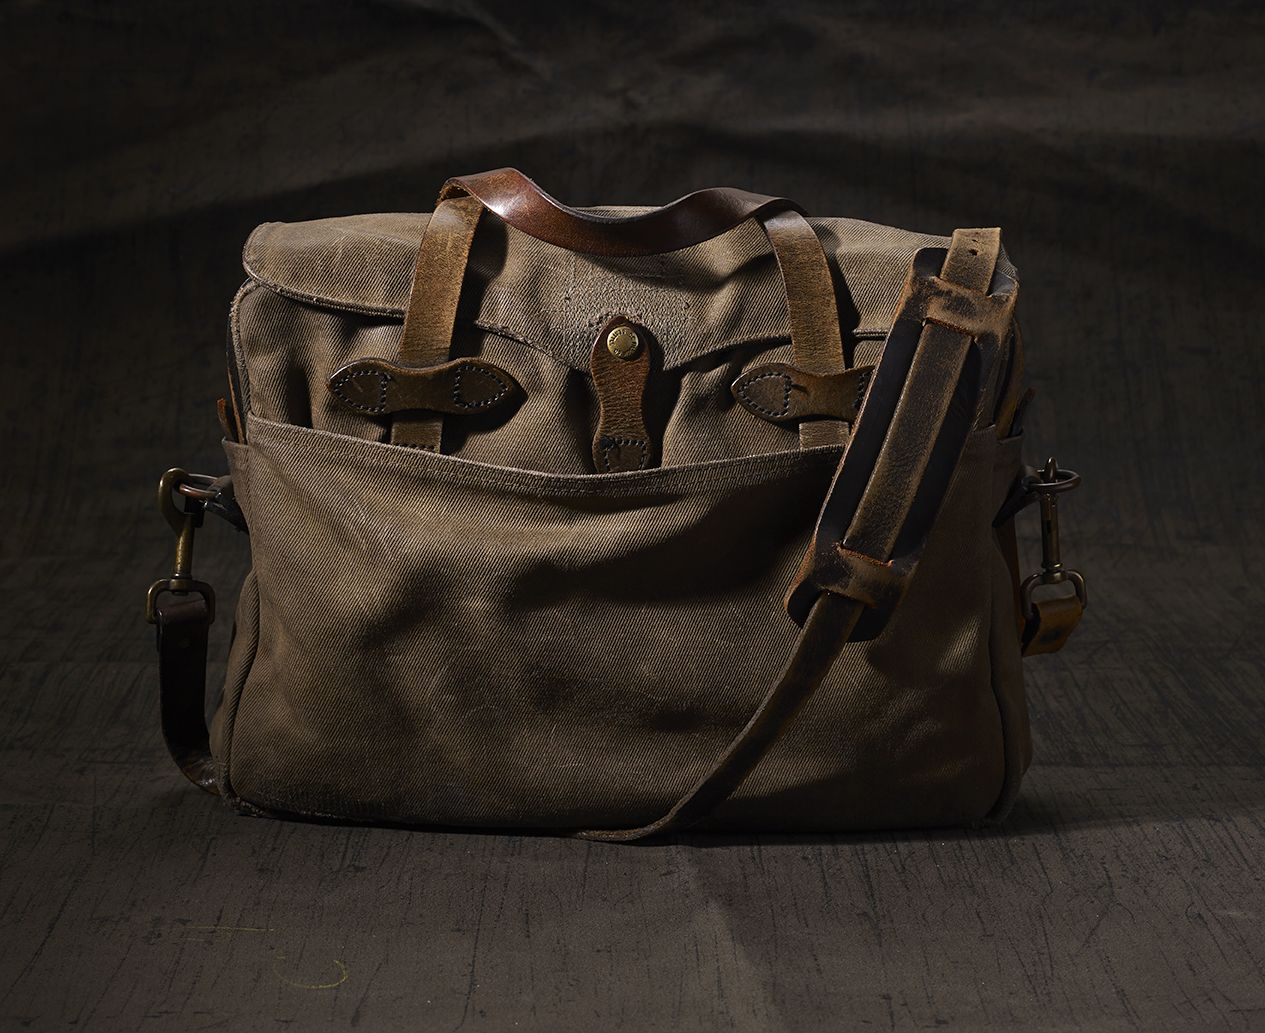 d78ede961f3 The Filson Restoration Department brings a second life to vintage Filson  bags